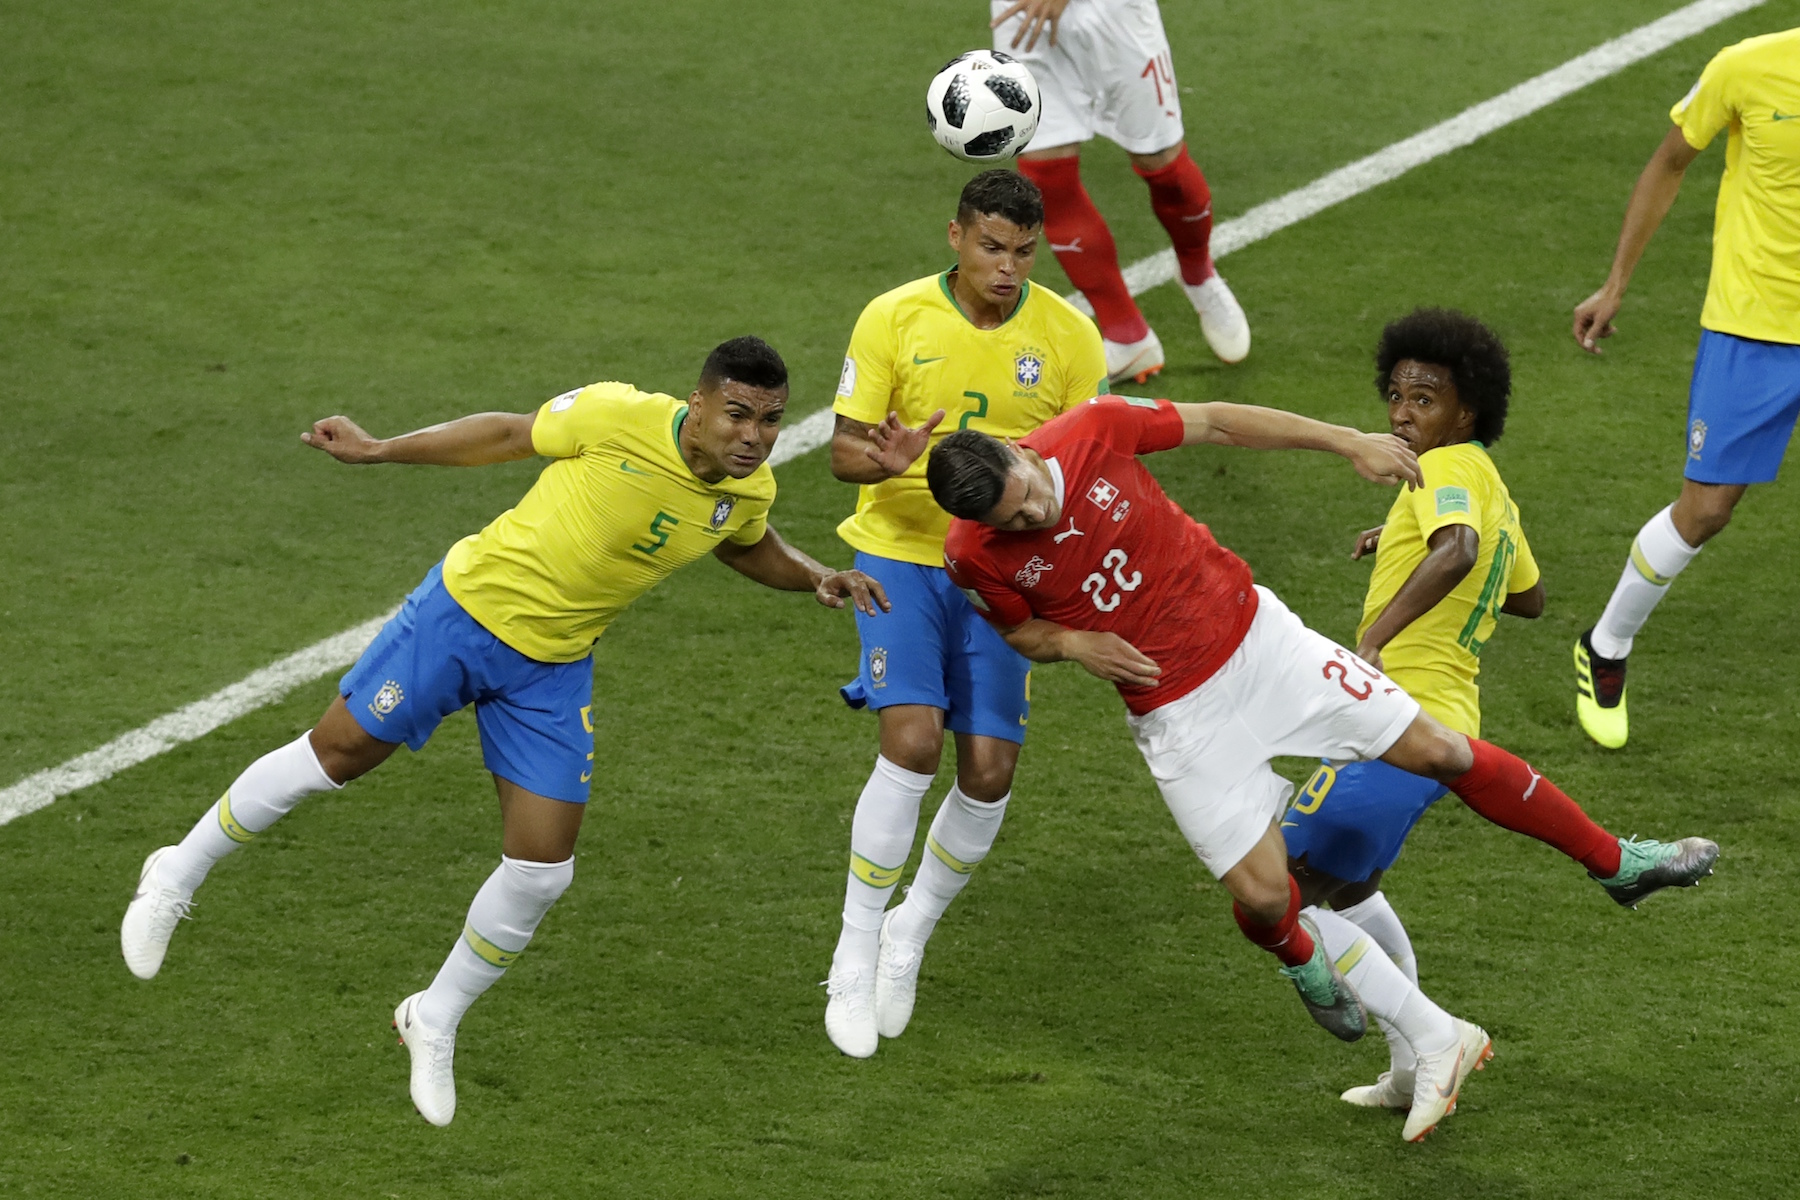 <div class='meta'><div class='origin-logo' data-origin='AP'></div><span class='caption-text' data-credit='AP Photo/Andrew Medichini'>Brazil's Casemiro, left, Thiago Silvaand, center, and Switzerland's Fabian Schaer jump for the ball during the group E match between Brazil and Switzerland.</span></div>